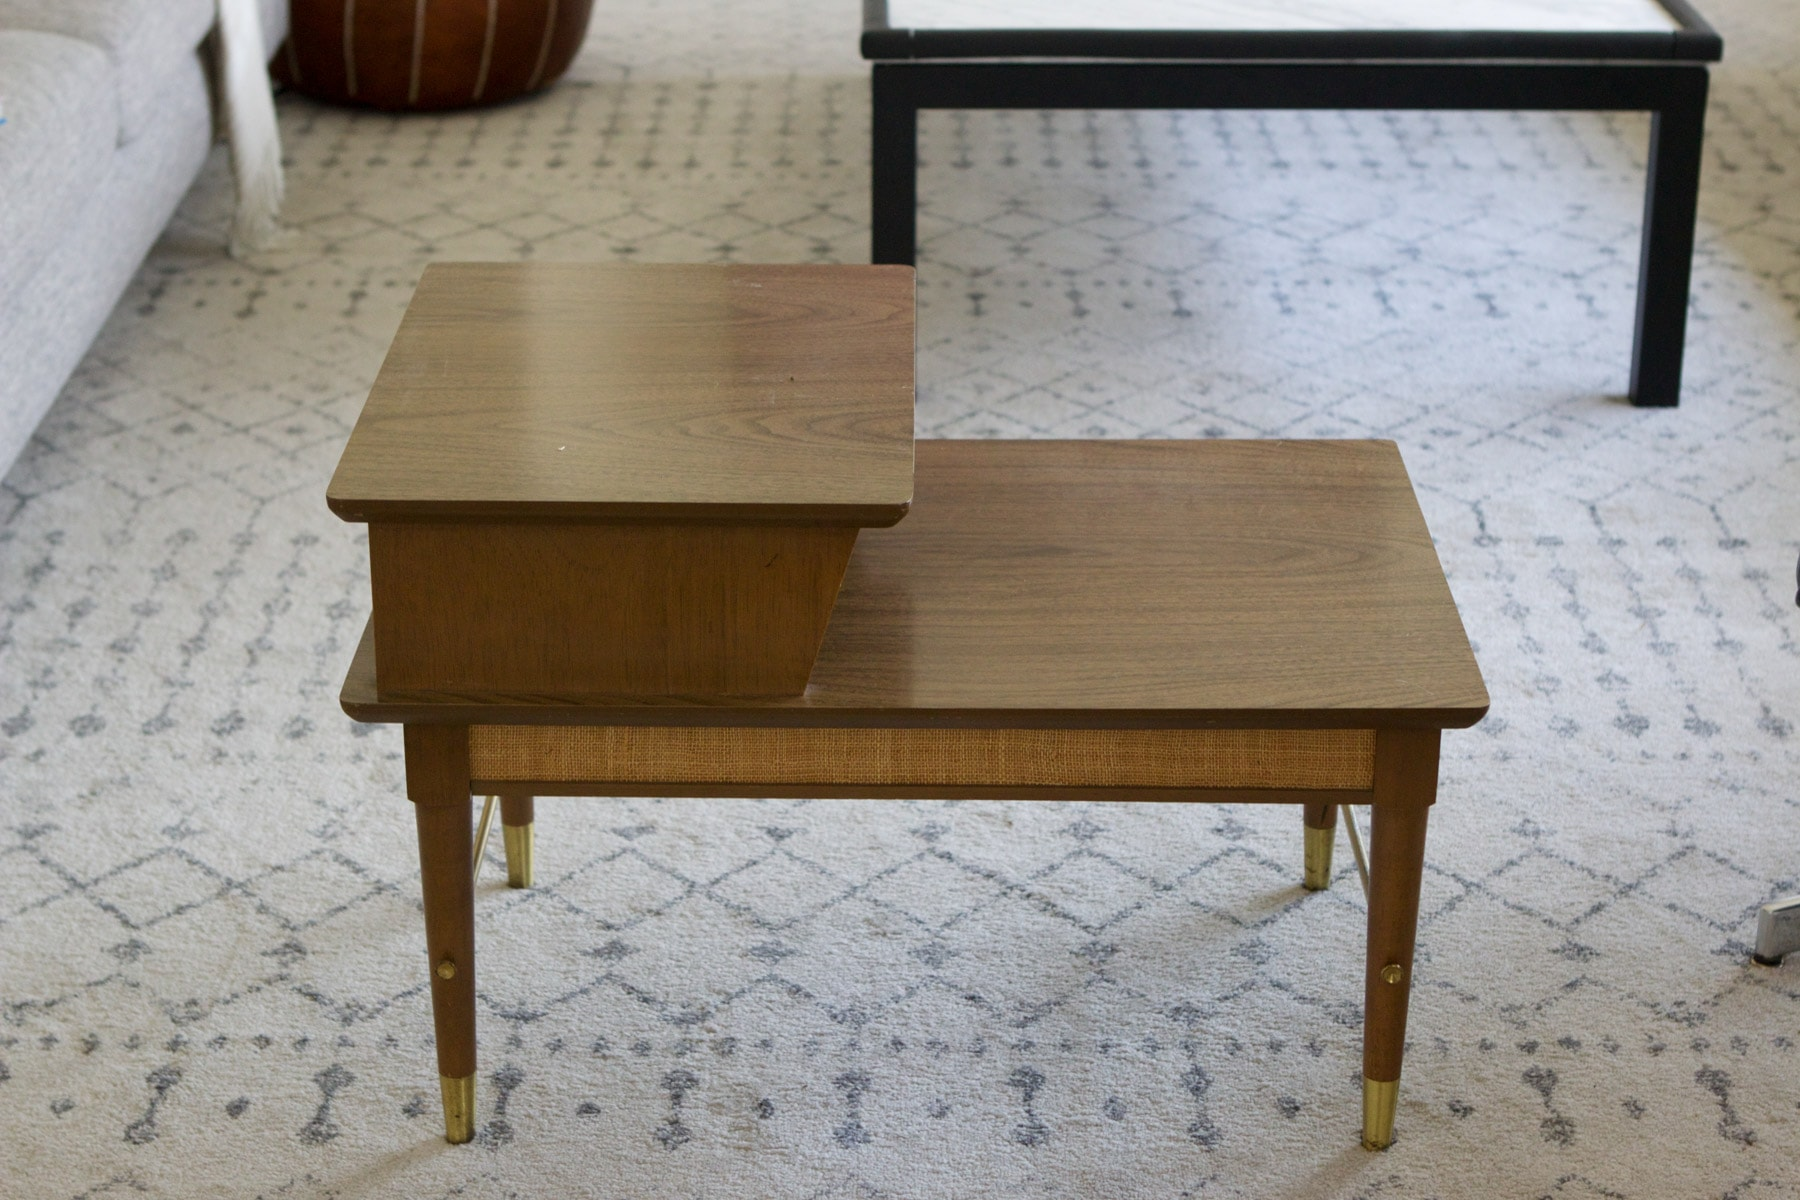 Finding a MCM side table on Facebook marketplace